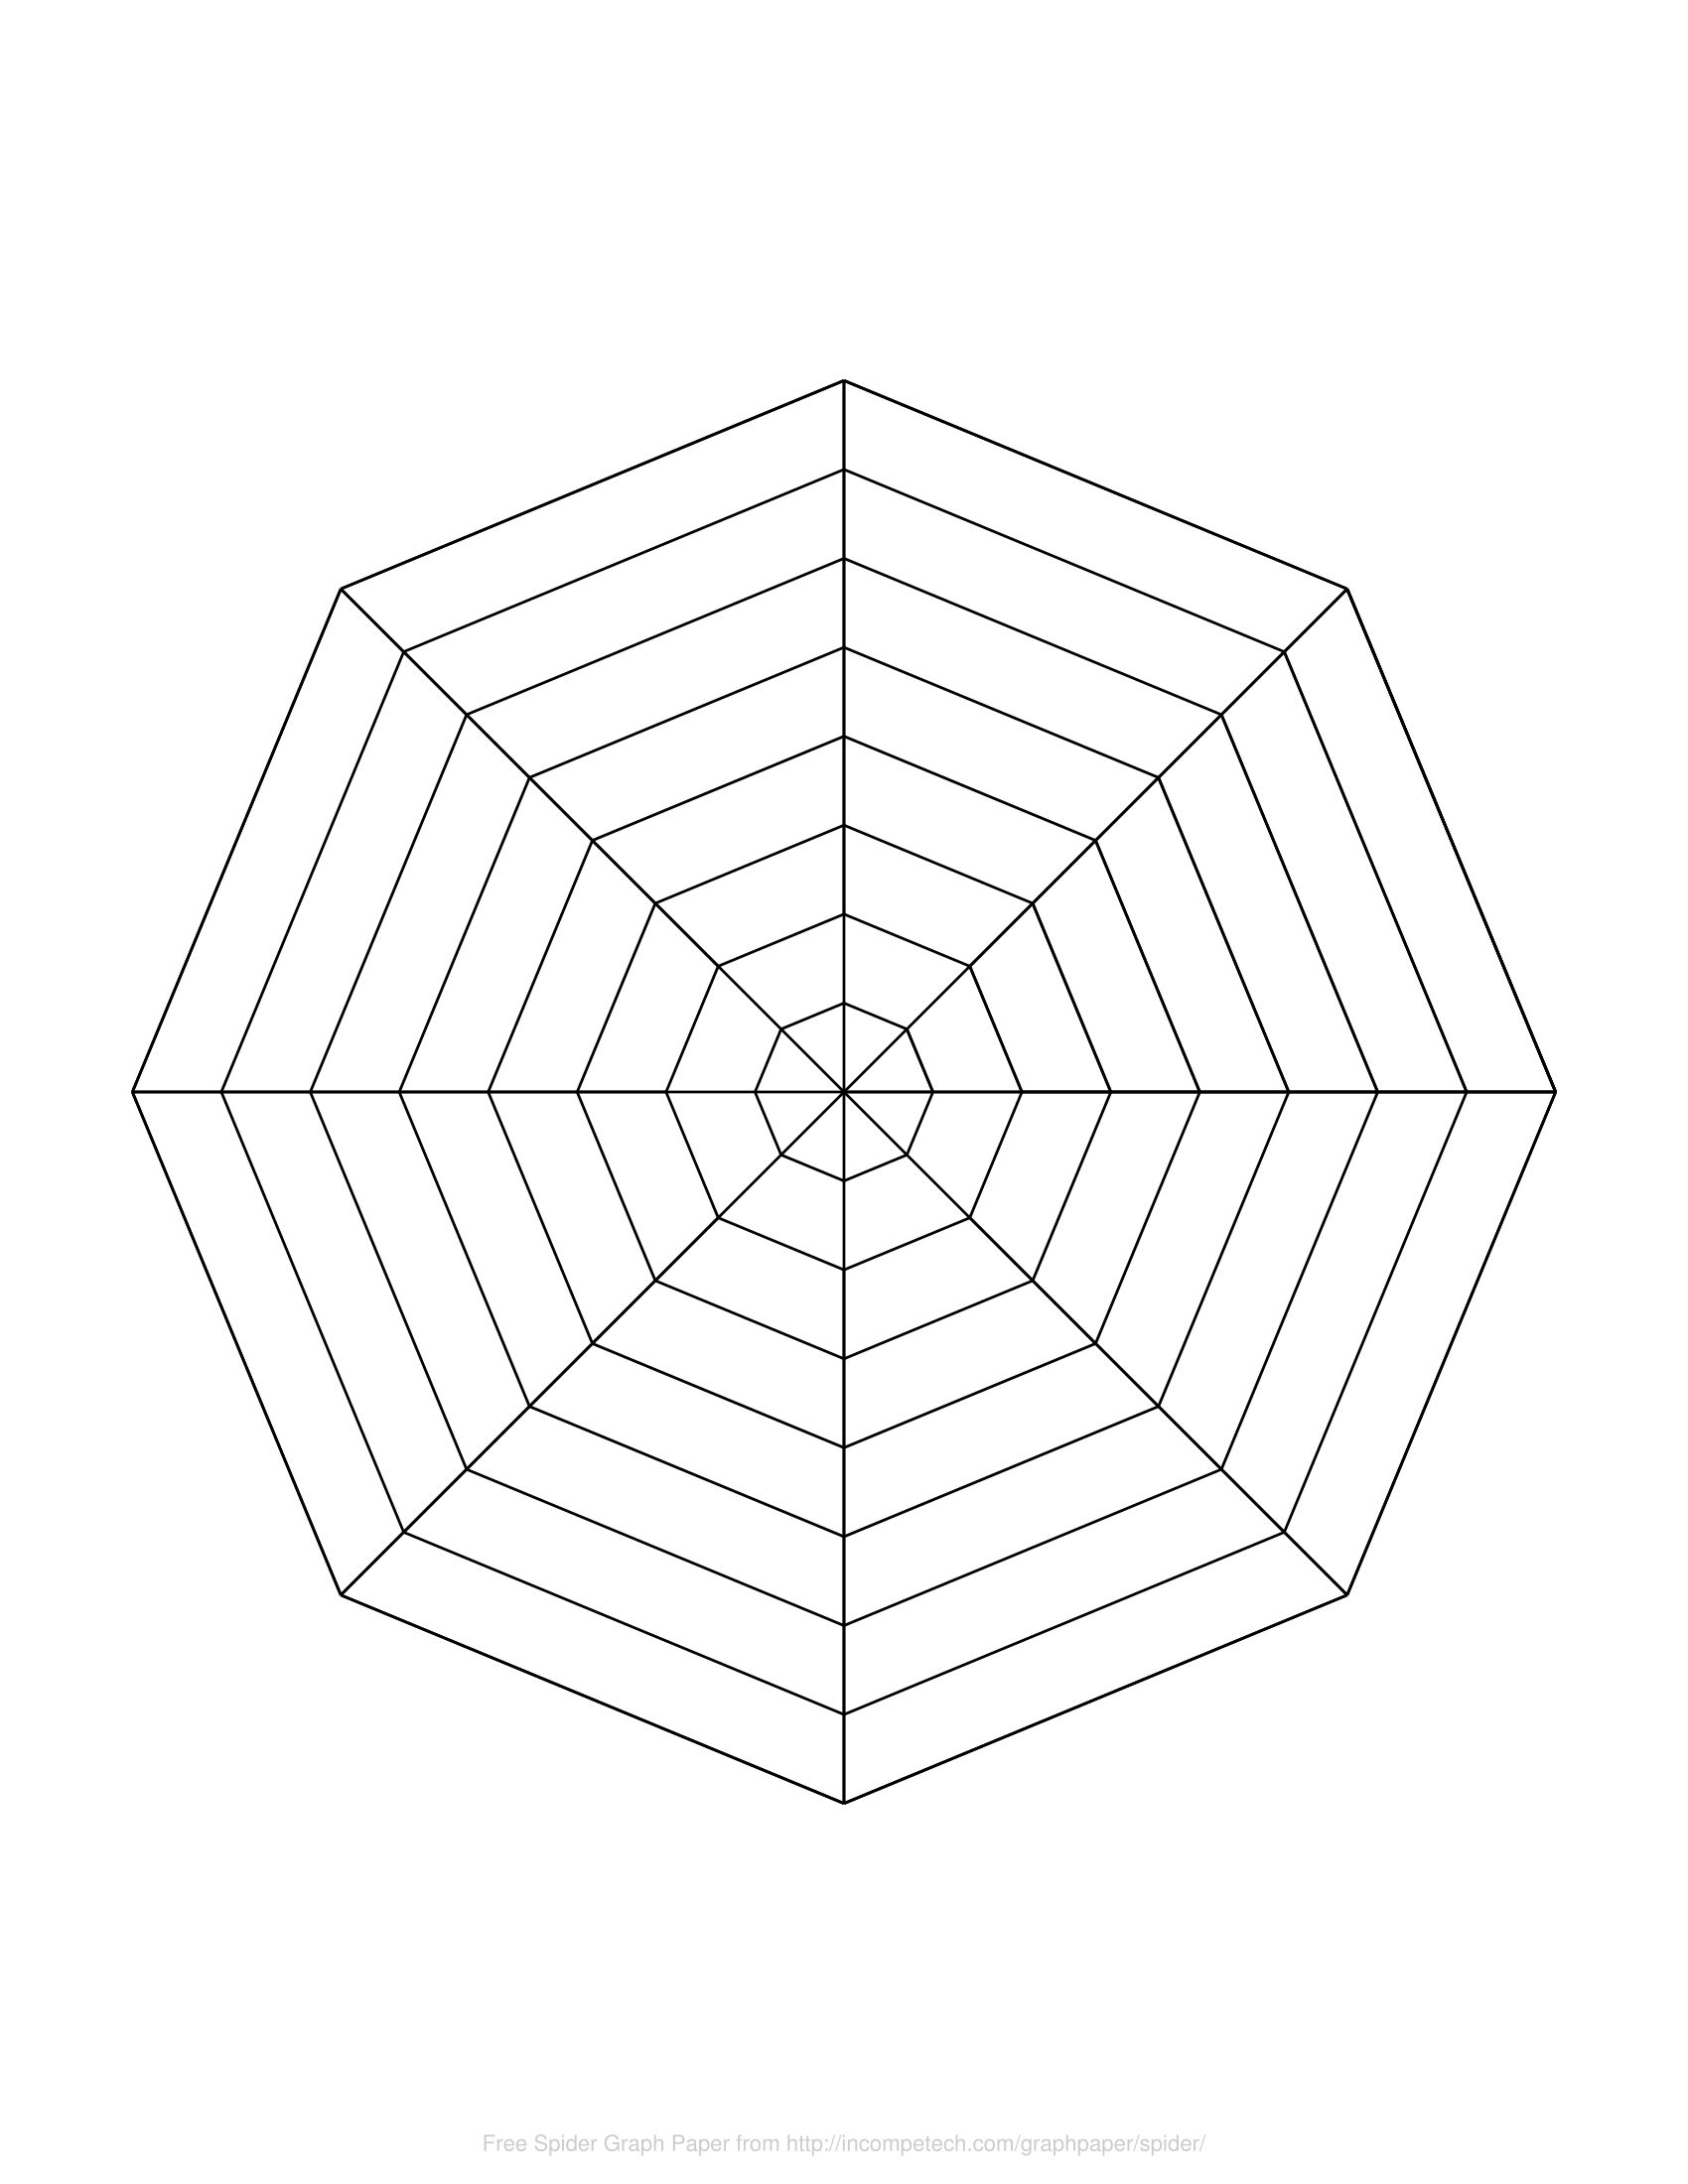 Free Online Graph Paper / Spider Pertaining To Blank Radar Chart Template